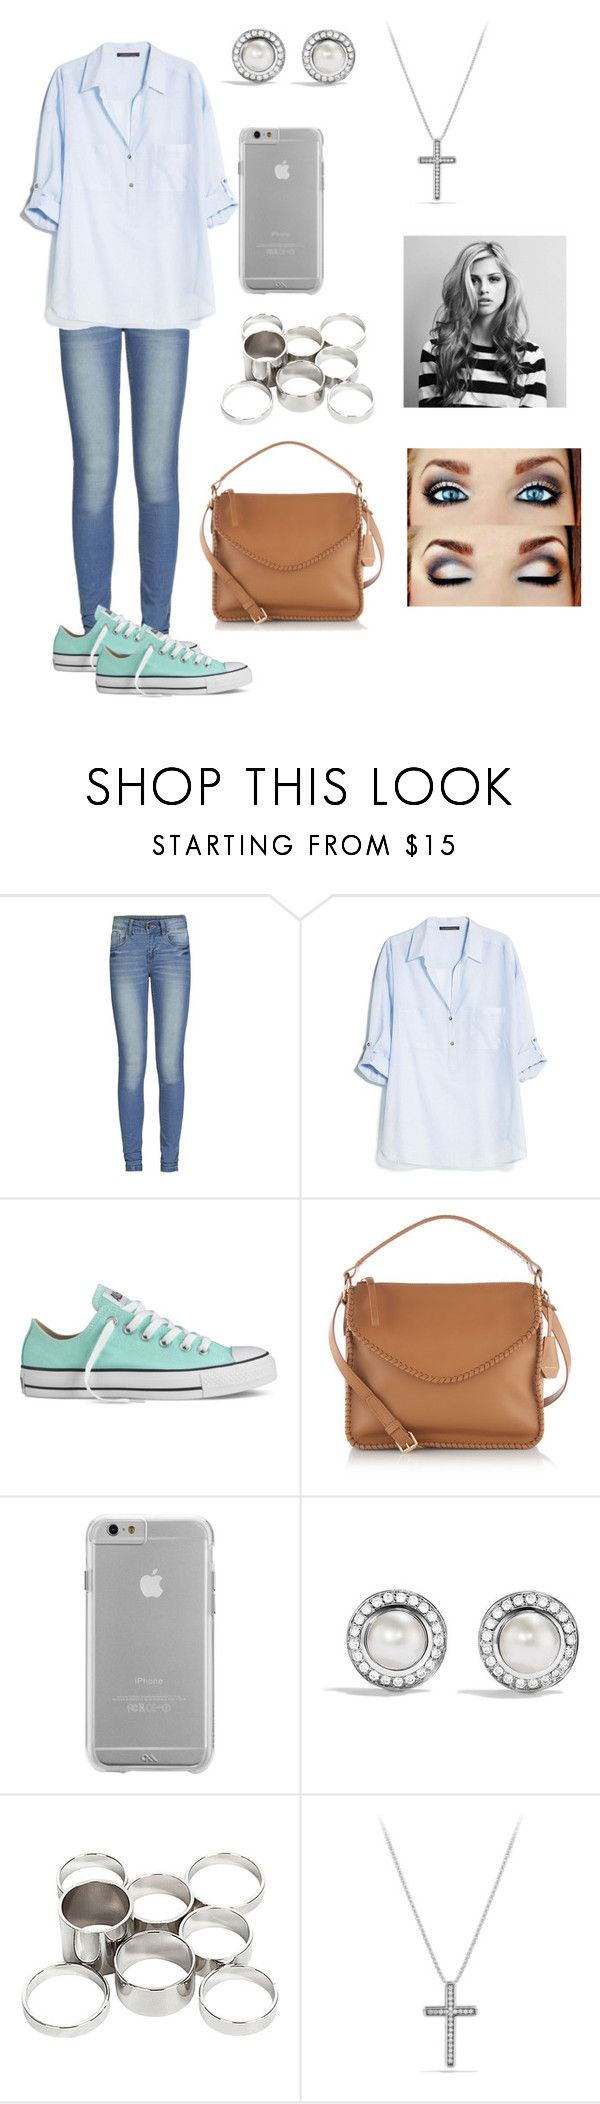 """""""...."""" by katiealford ❤ liked on Polyvore featuring ONLY, MANGO, Converse, Henri Bendel, Case-Mate, David Yurman and Missguided"""